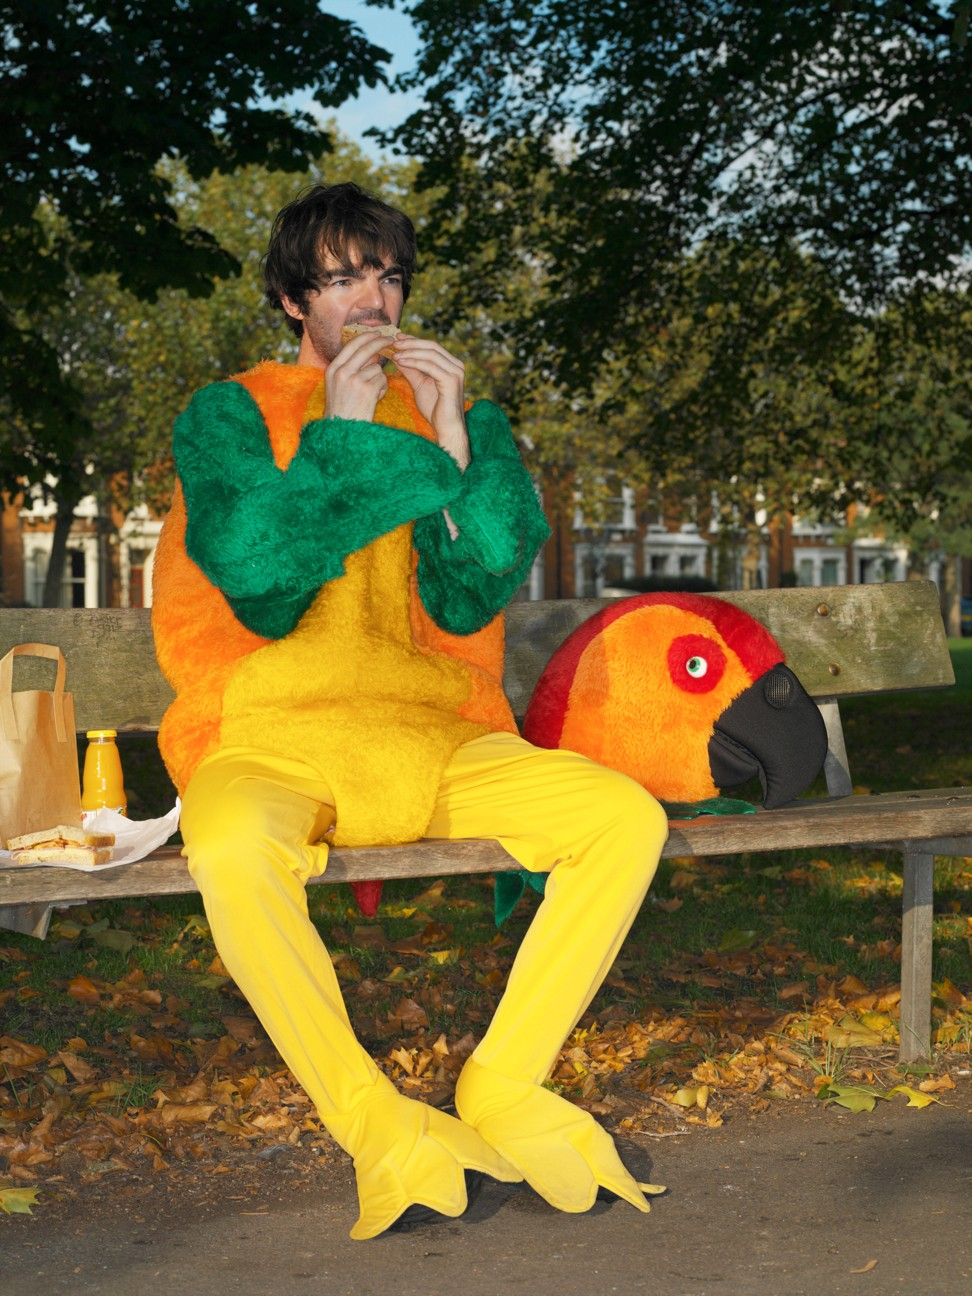 A wildlife park near London has banned clothing that resembles animals. Photo: Alamy